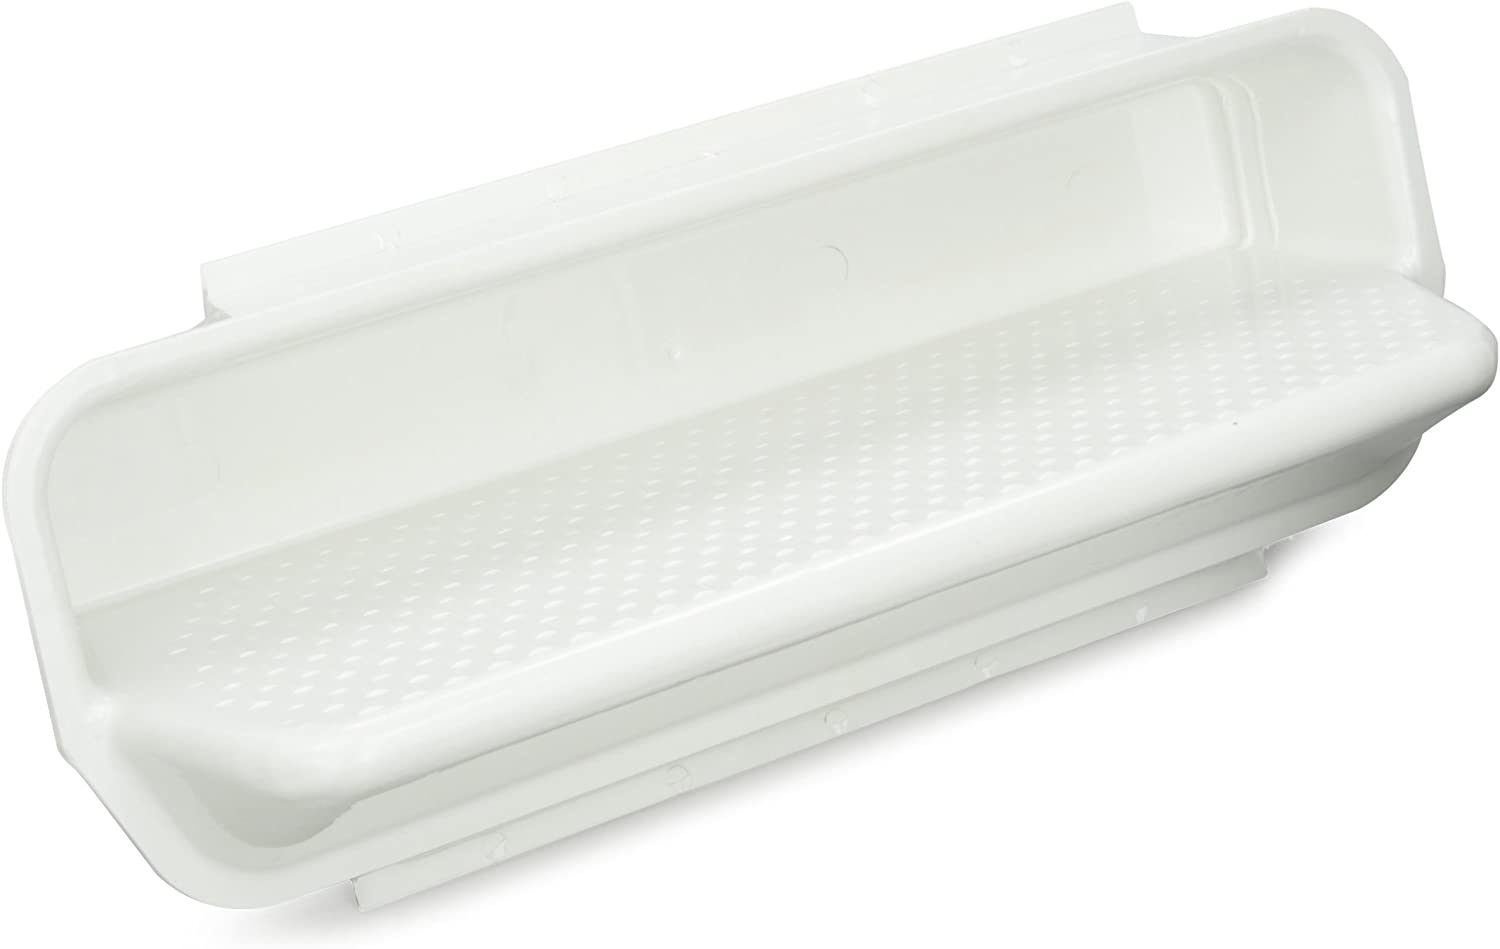 Atlanta Mall CPM Detroit Mall 25578-000-000 3-Pack Wall Step Ladder Pools White for